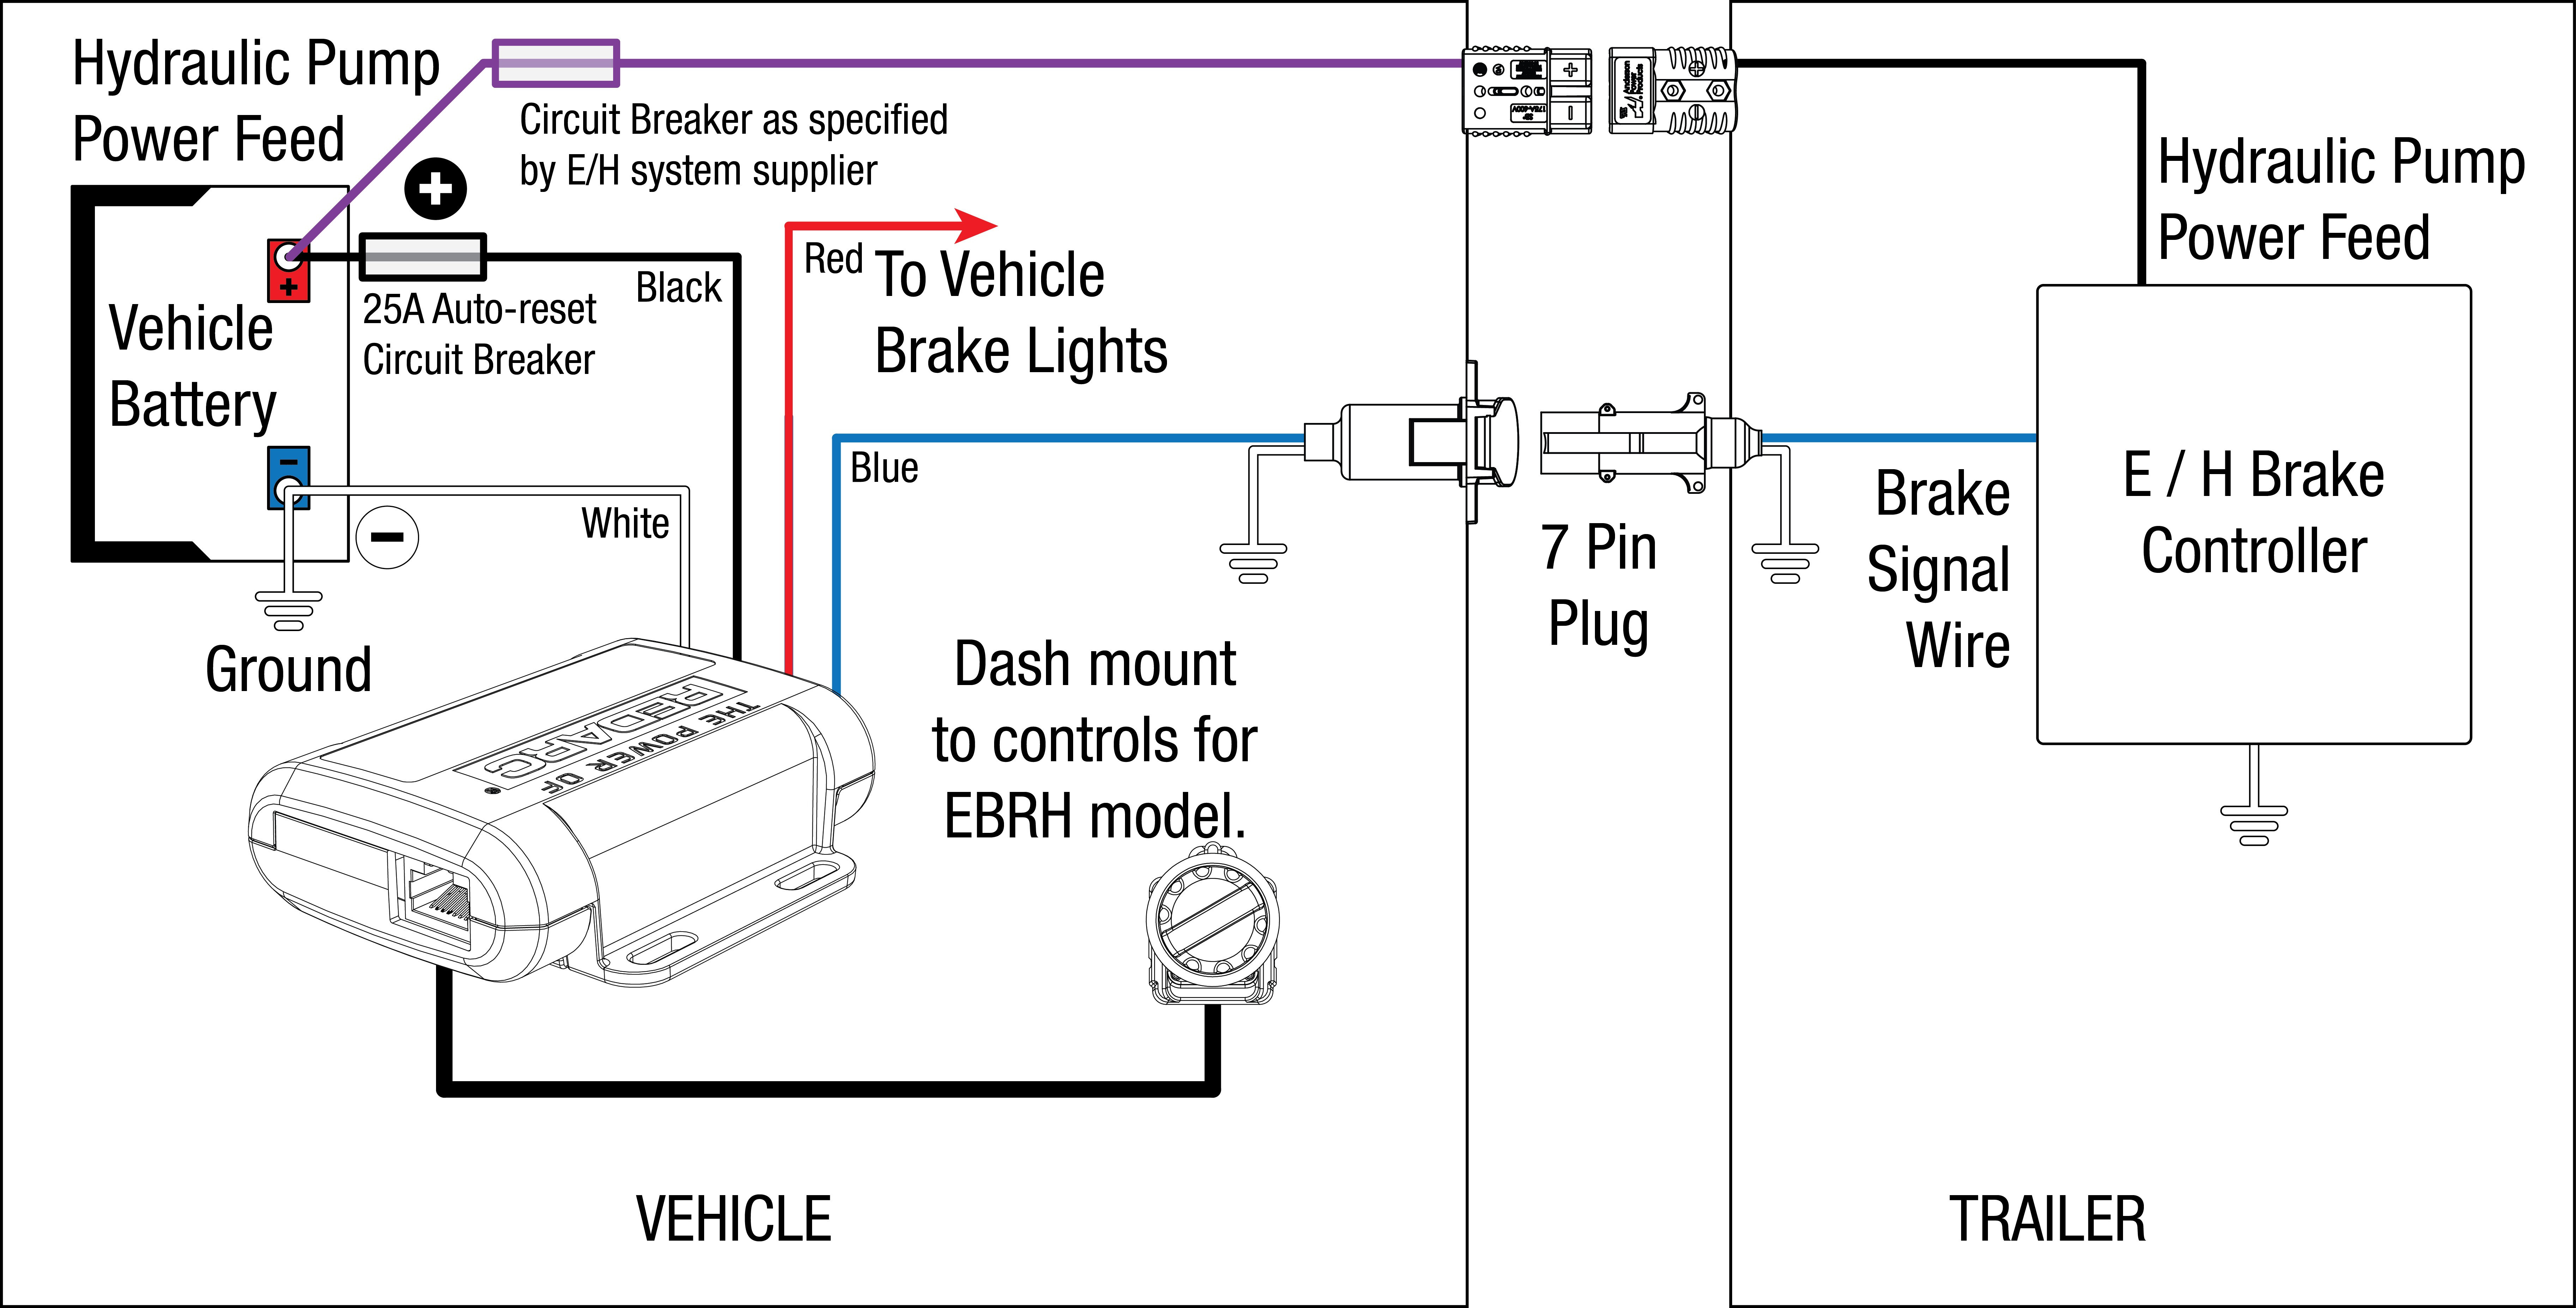 kwikee electric step wiring diagram Collection-Wiring Diagram for Kwikee Step Refrence Wiring Diagram for Rv Steps Save Kwikee Electric Step Wiring 14-t